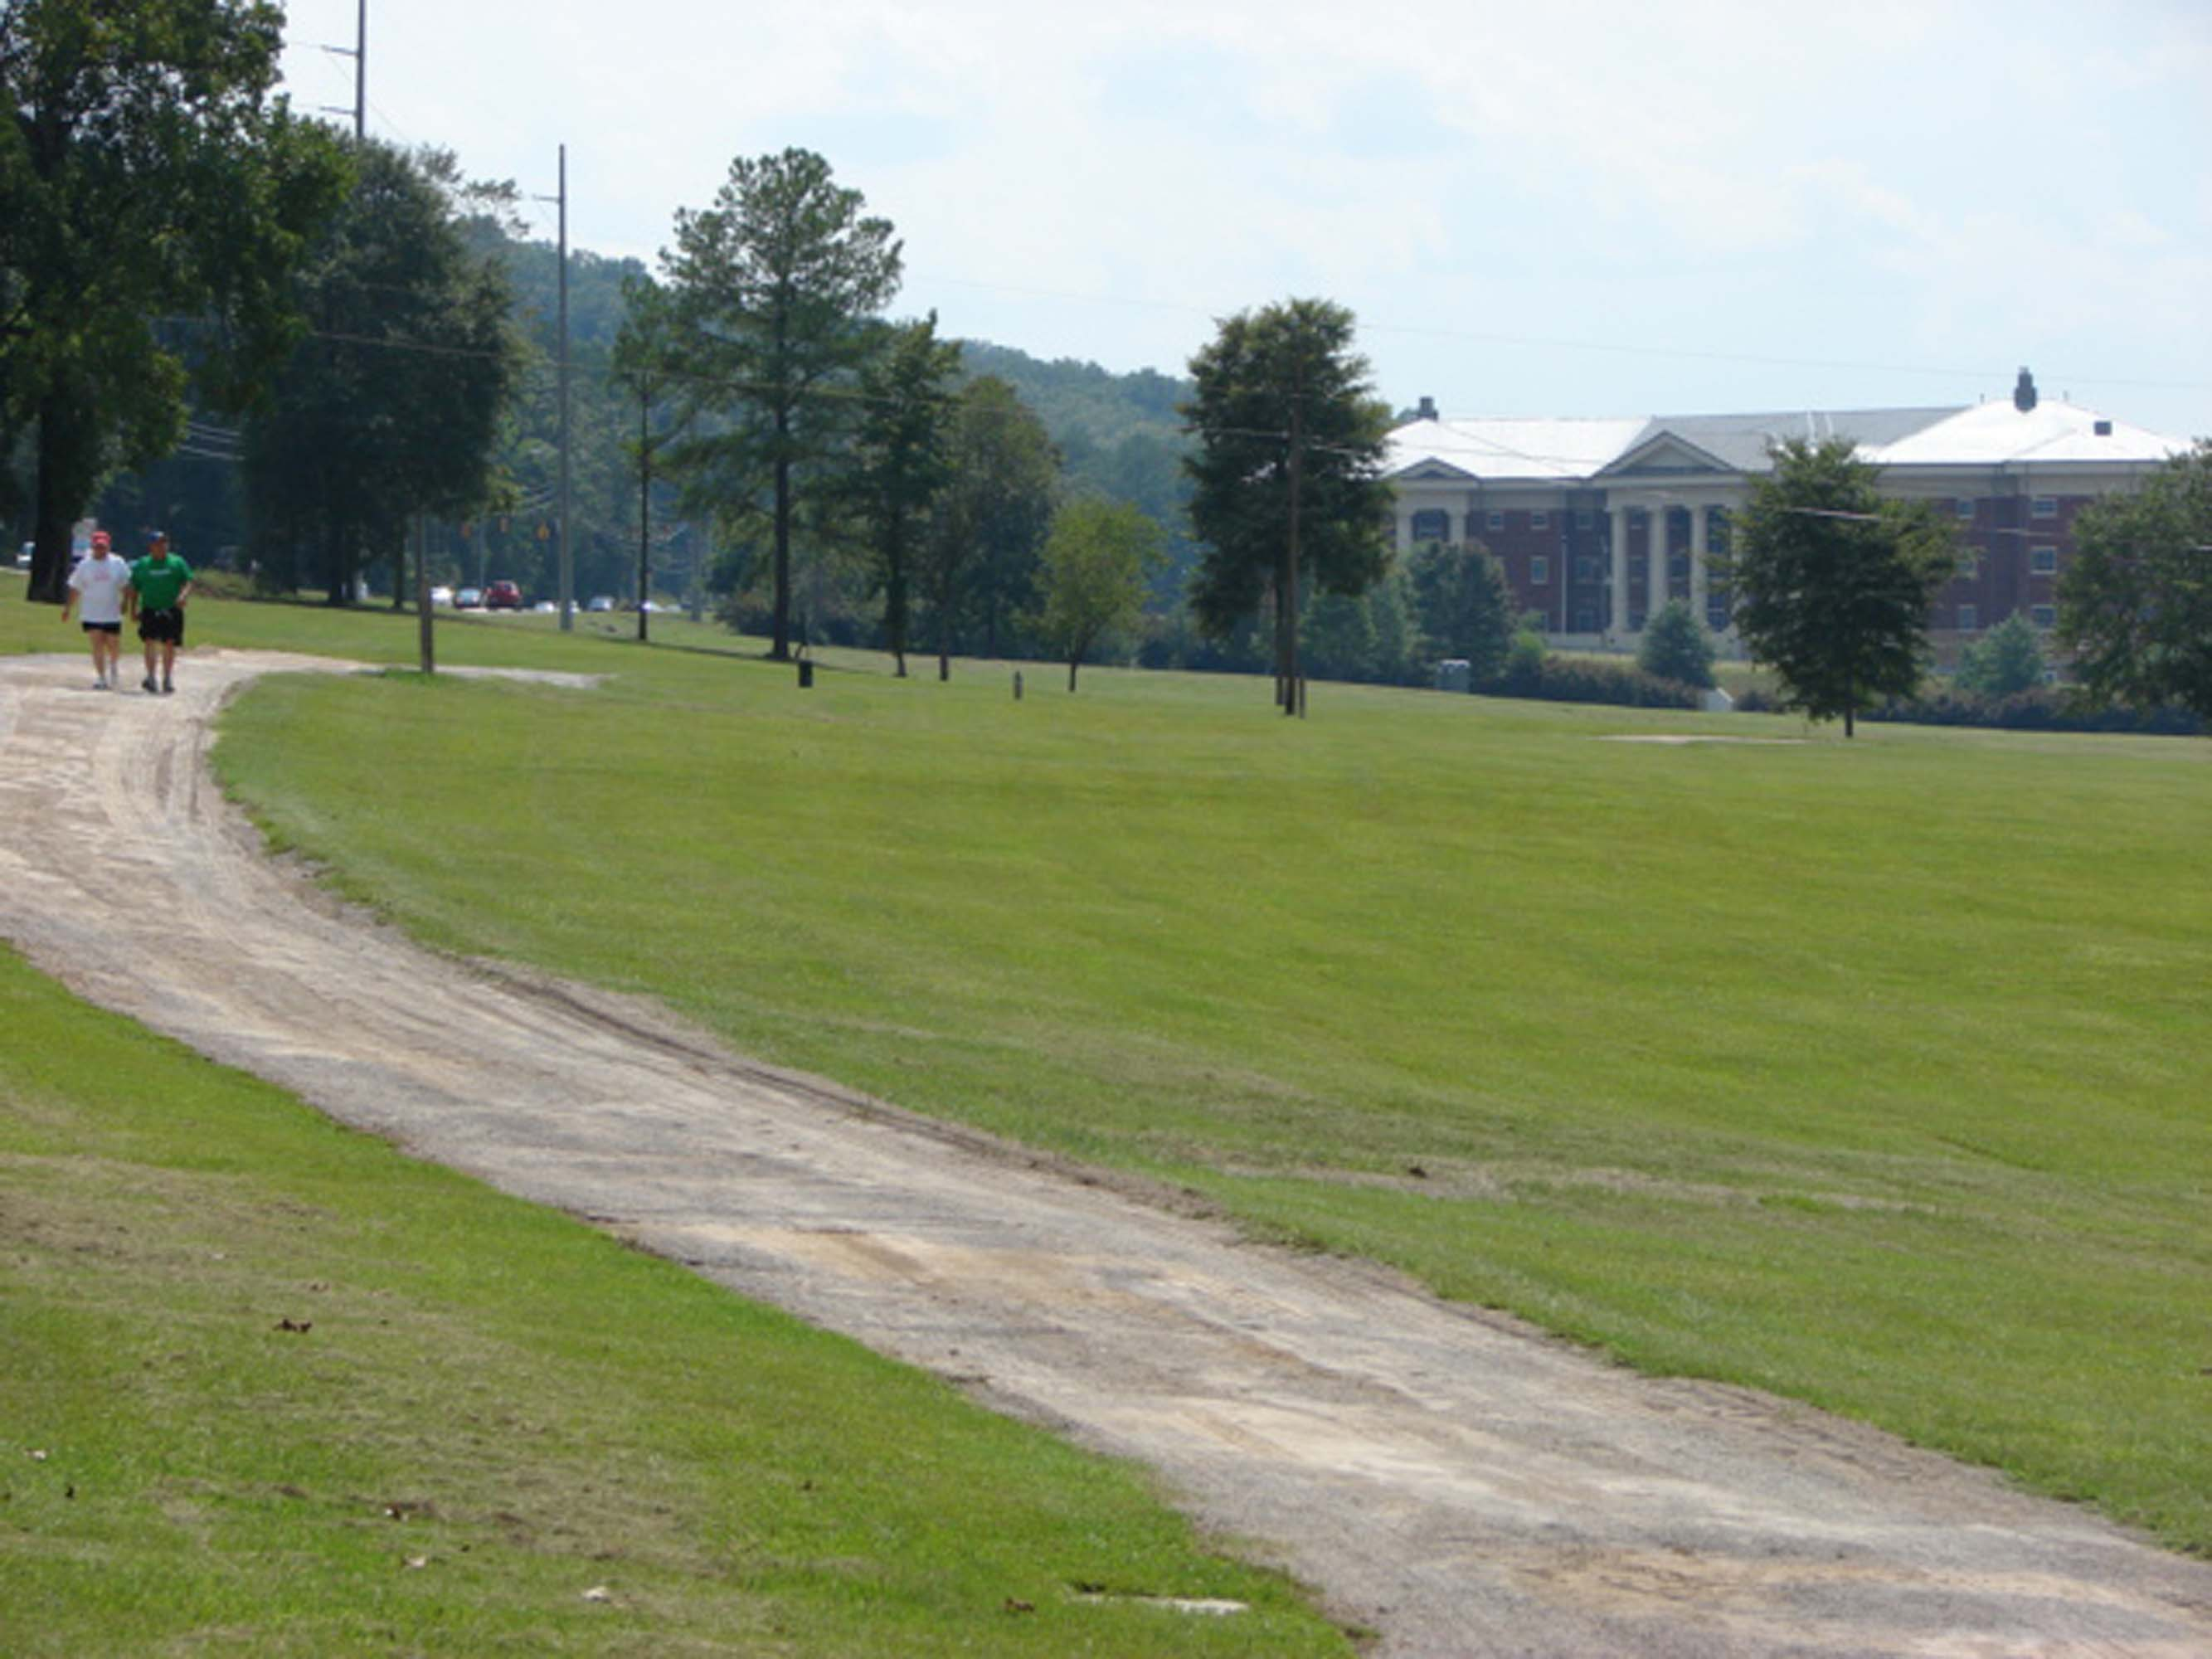 Veterans Park on Valleydale